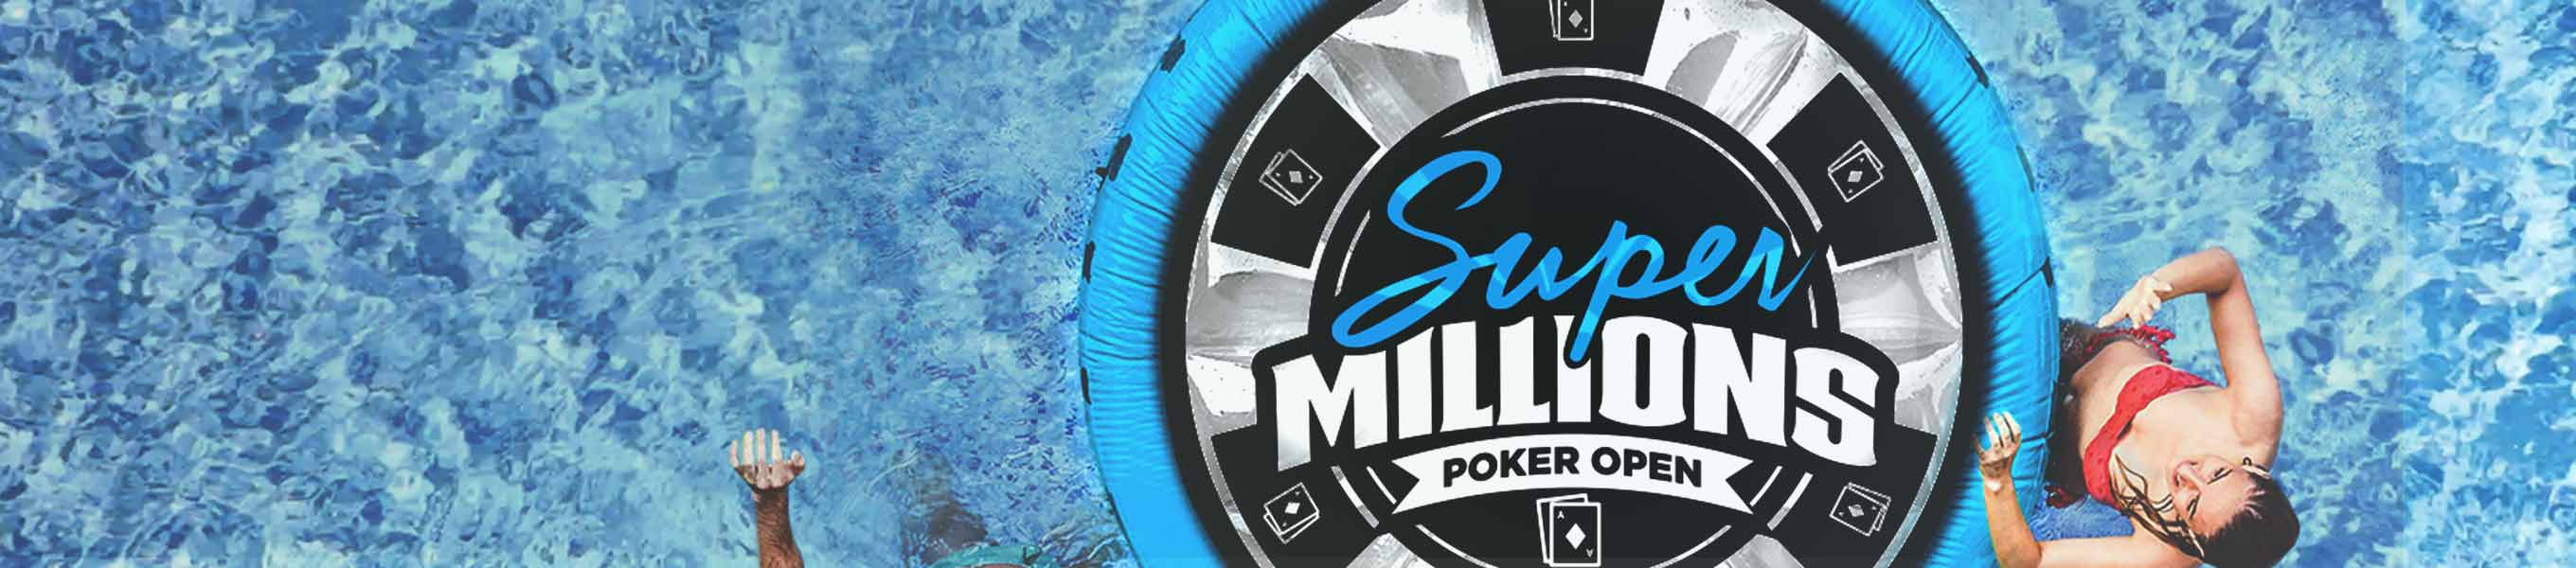 Learn more about the Super Millions Poker Open